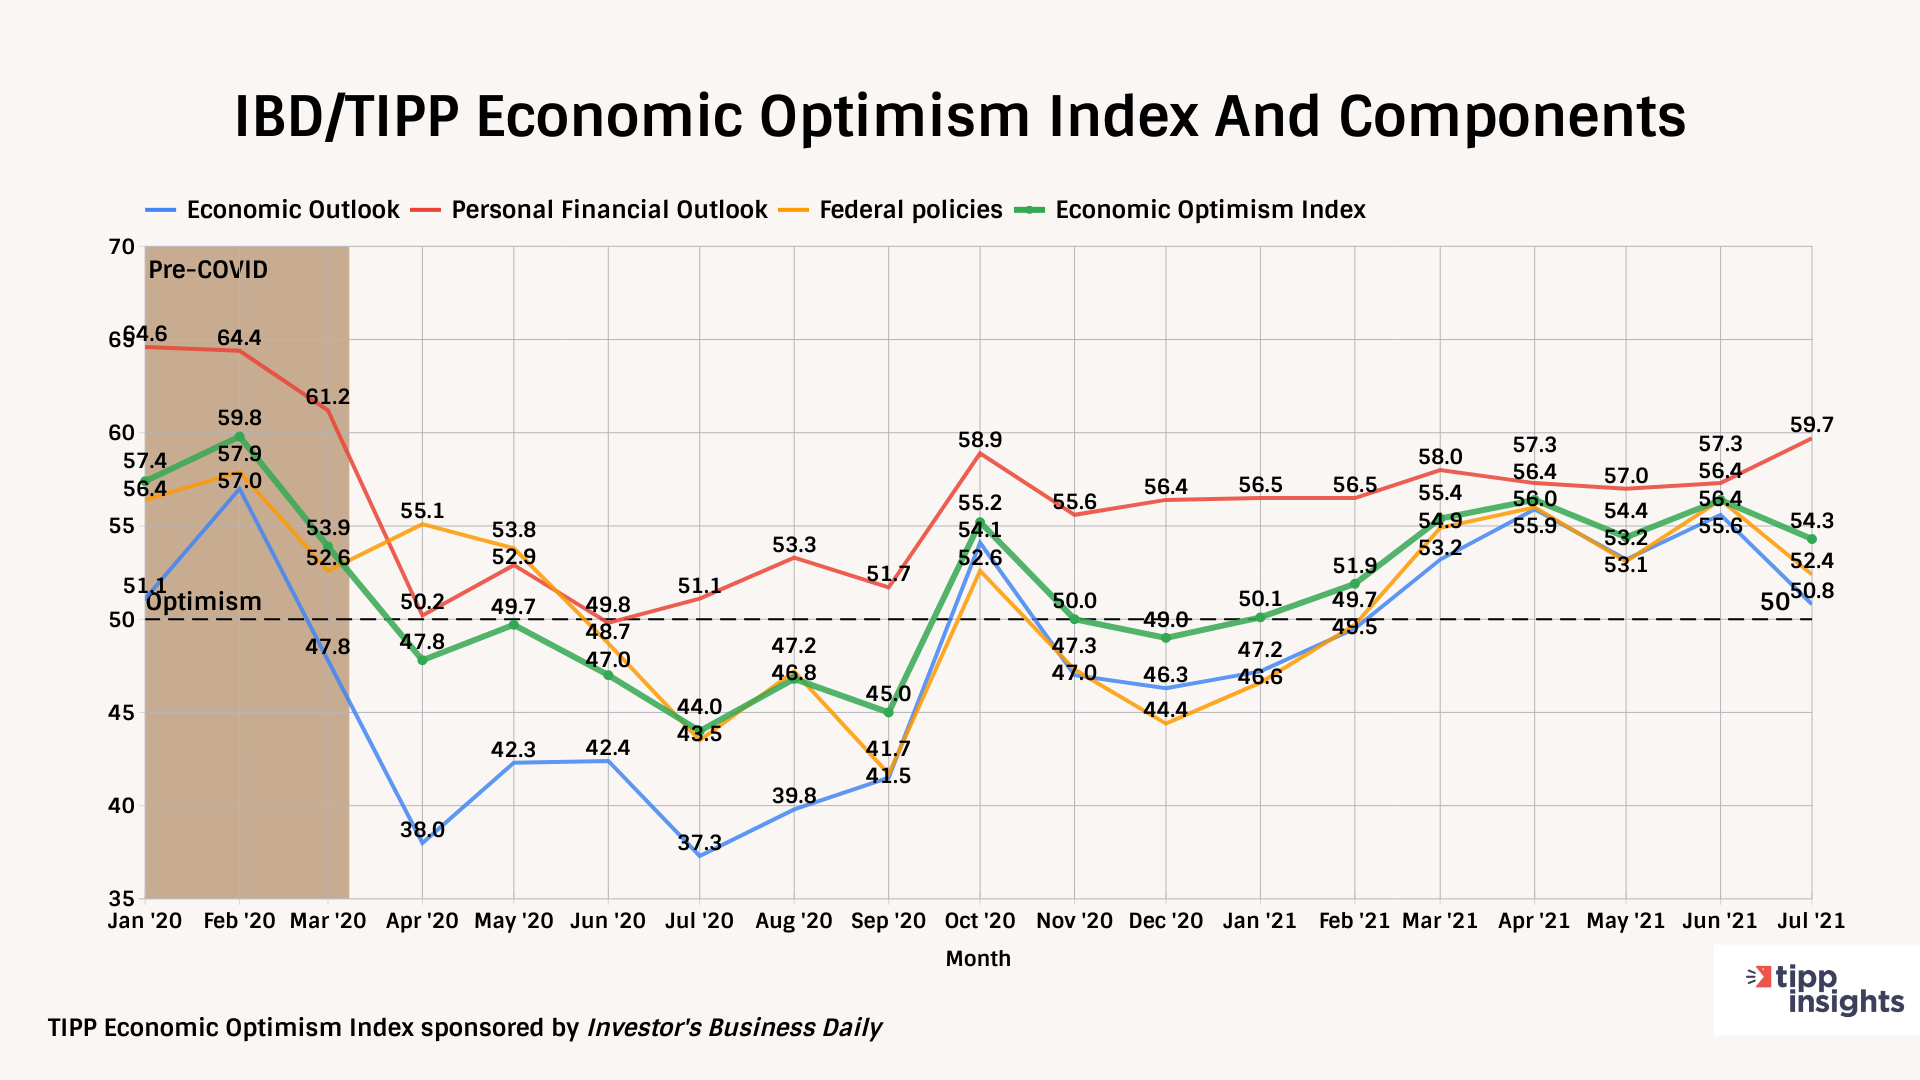 IBD/TIPP Economic Optimism Index, Economic outlook, personal financial outlook, federal policies, economic optimism index tracking.